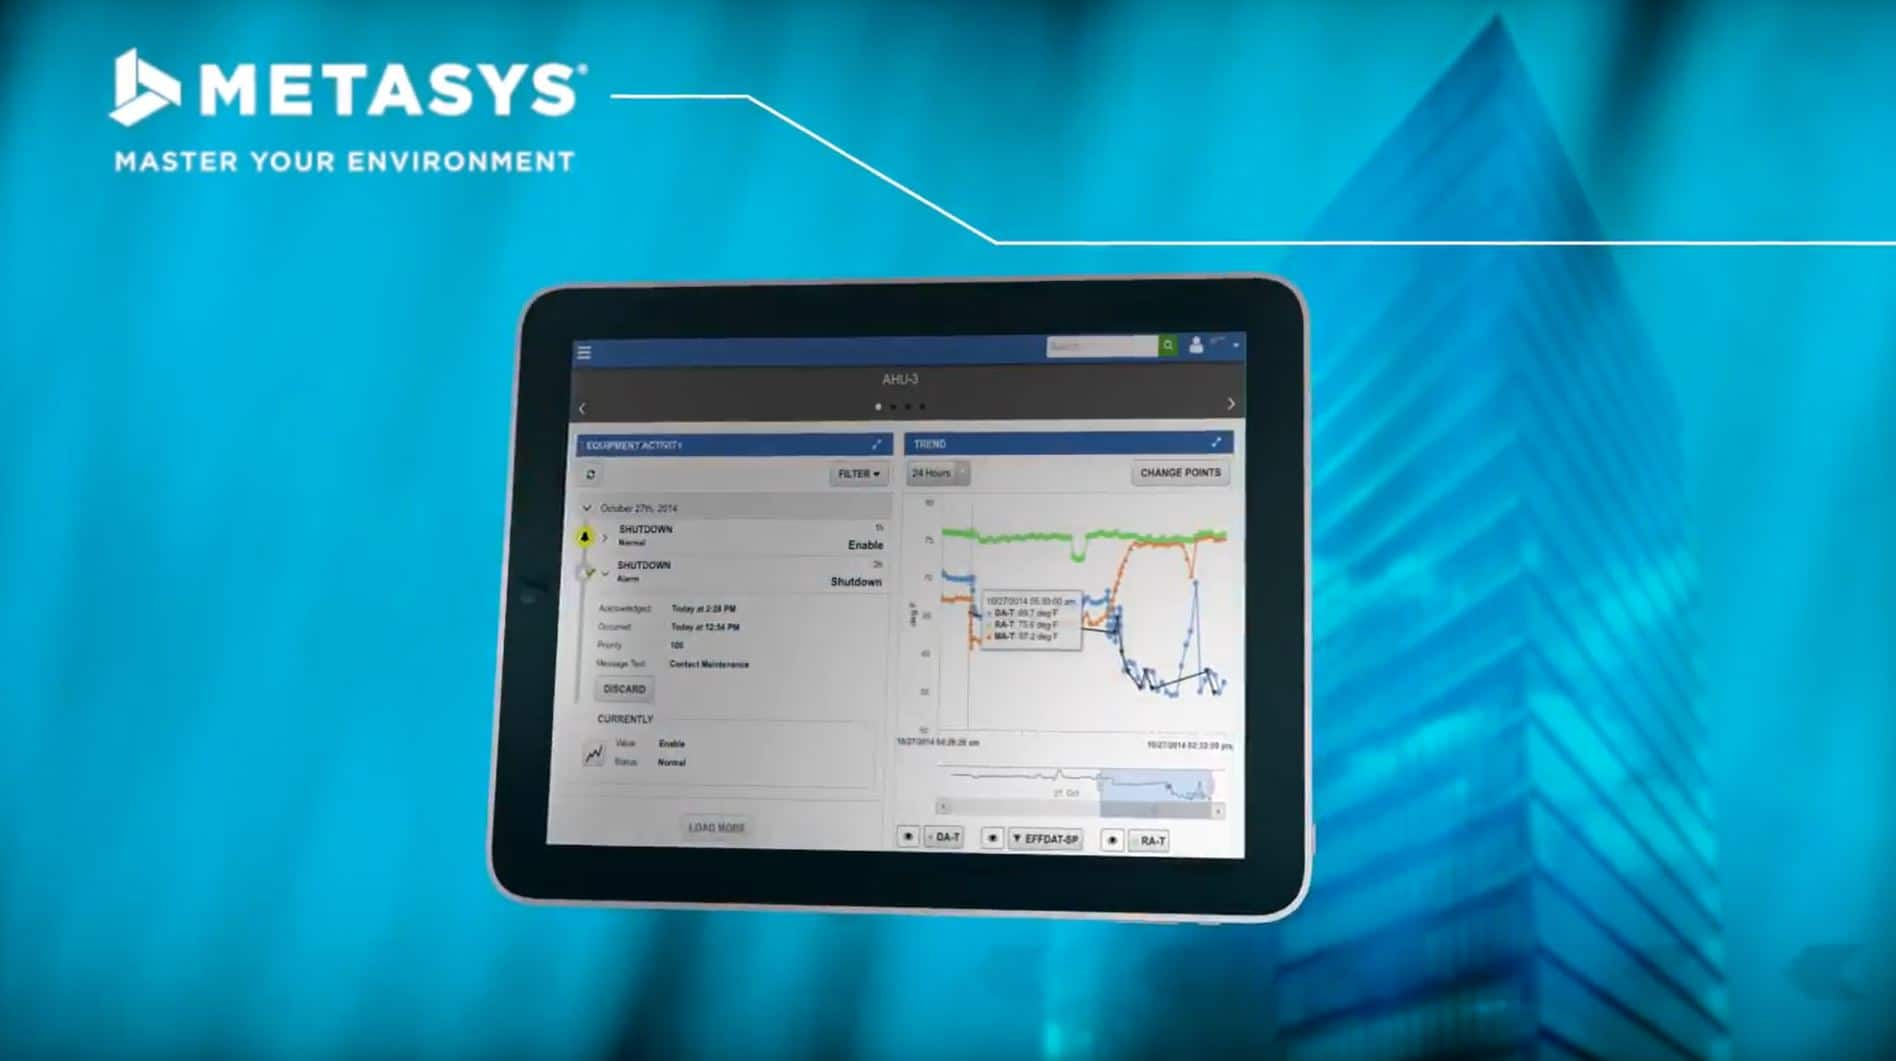 Metasys building automation systems bas johnson controls mobile optimized bas metasys building automation system asfbconference2016 Choice Image